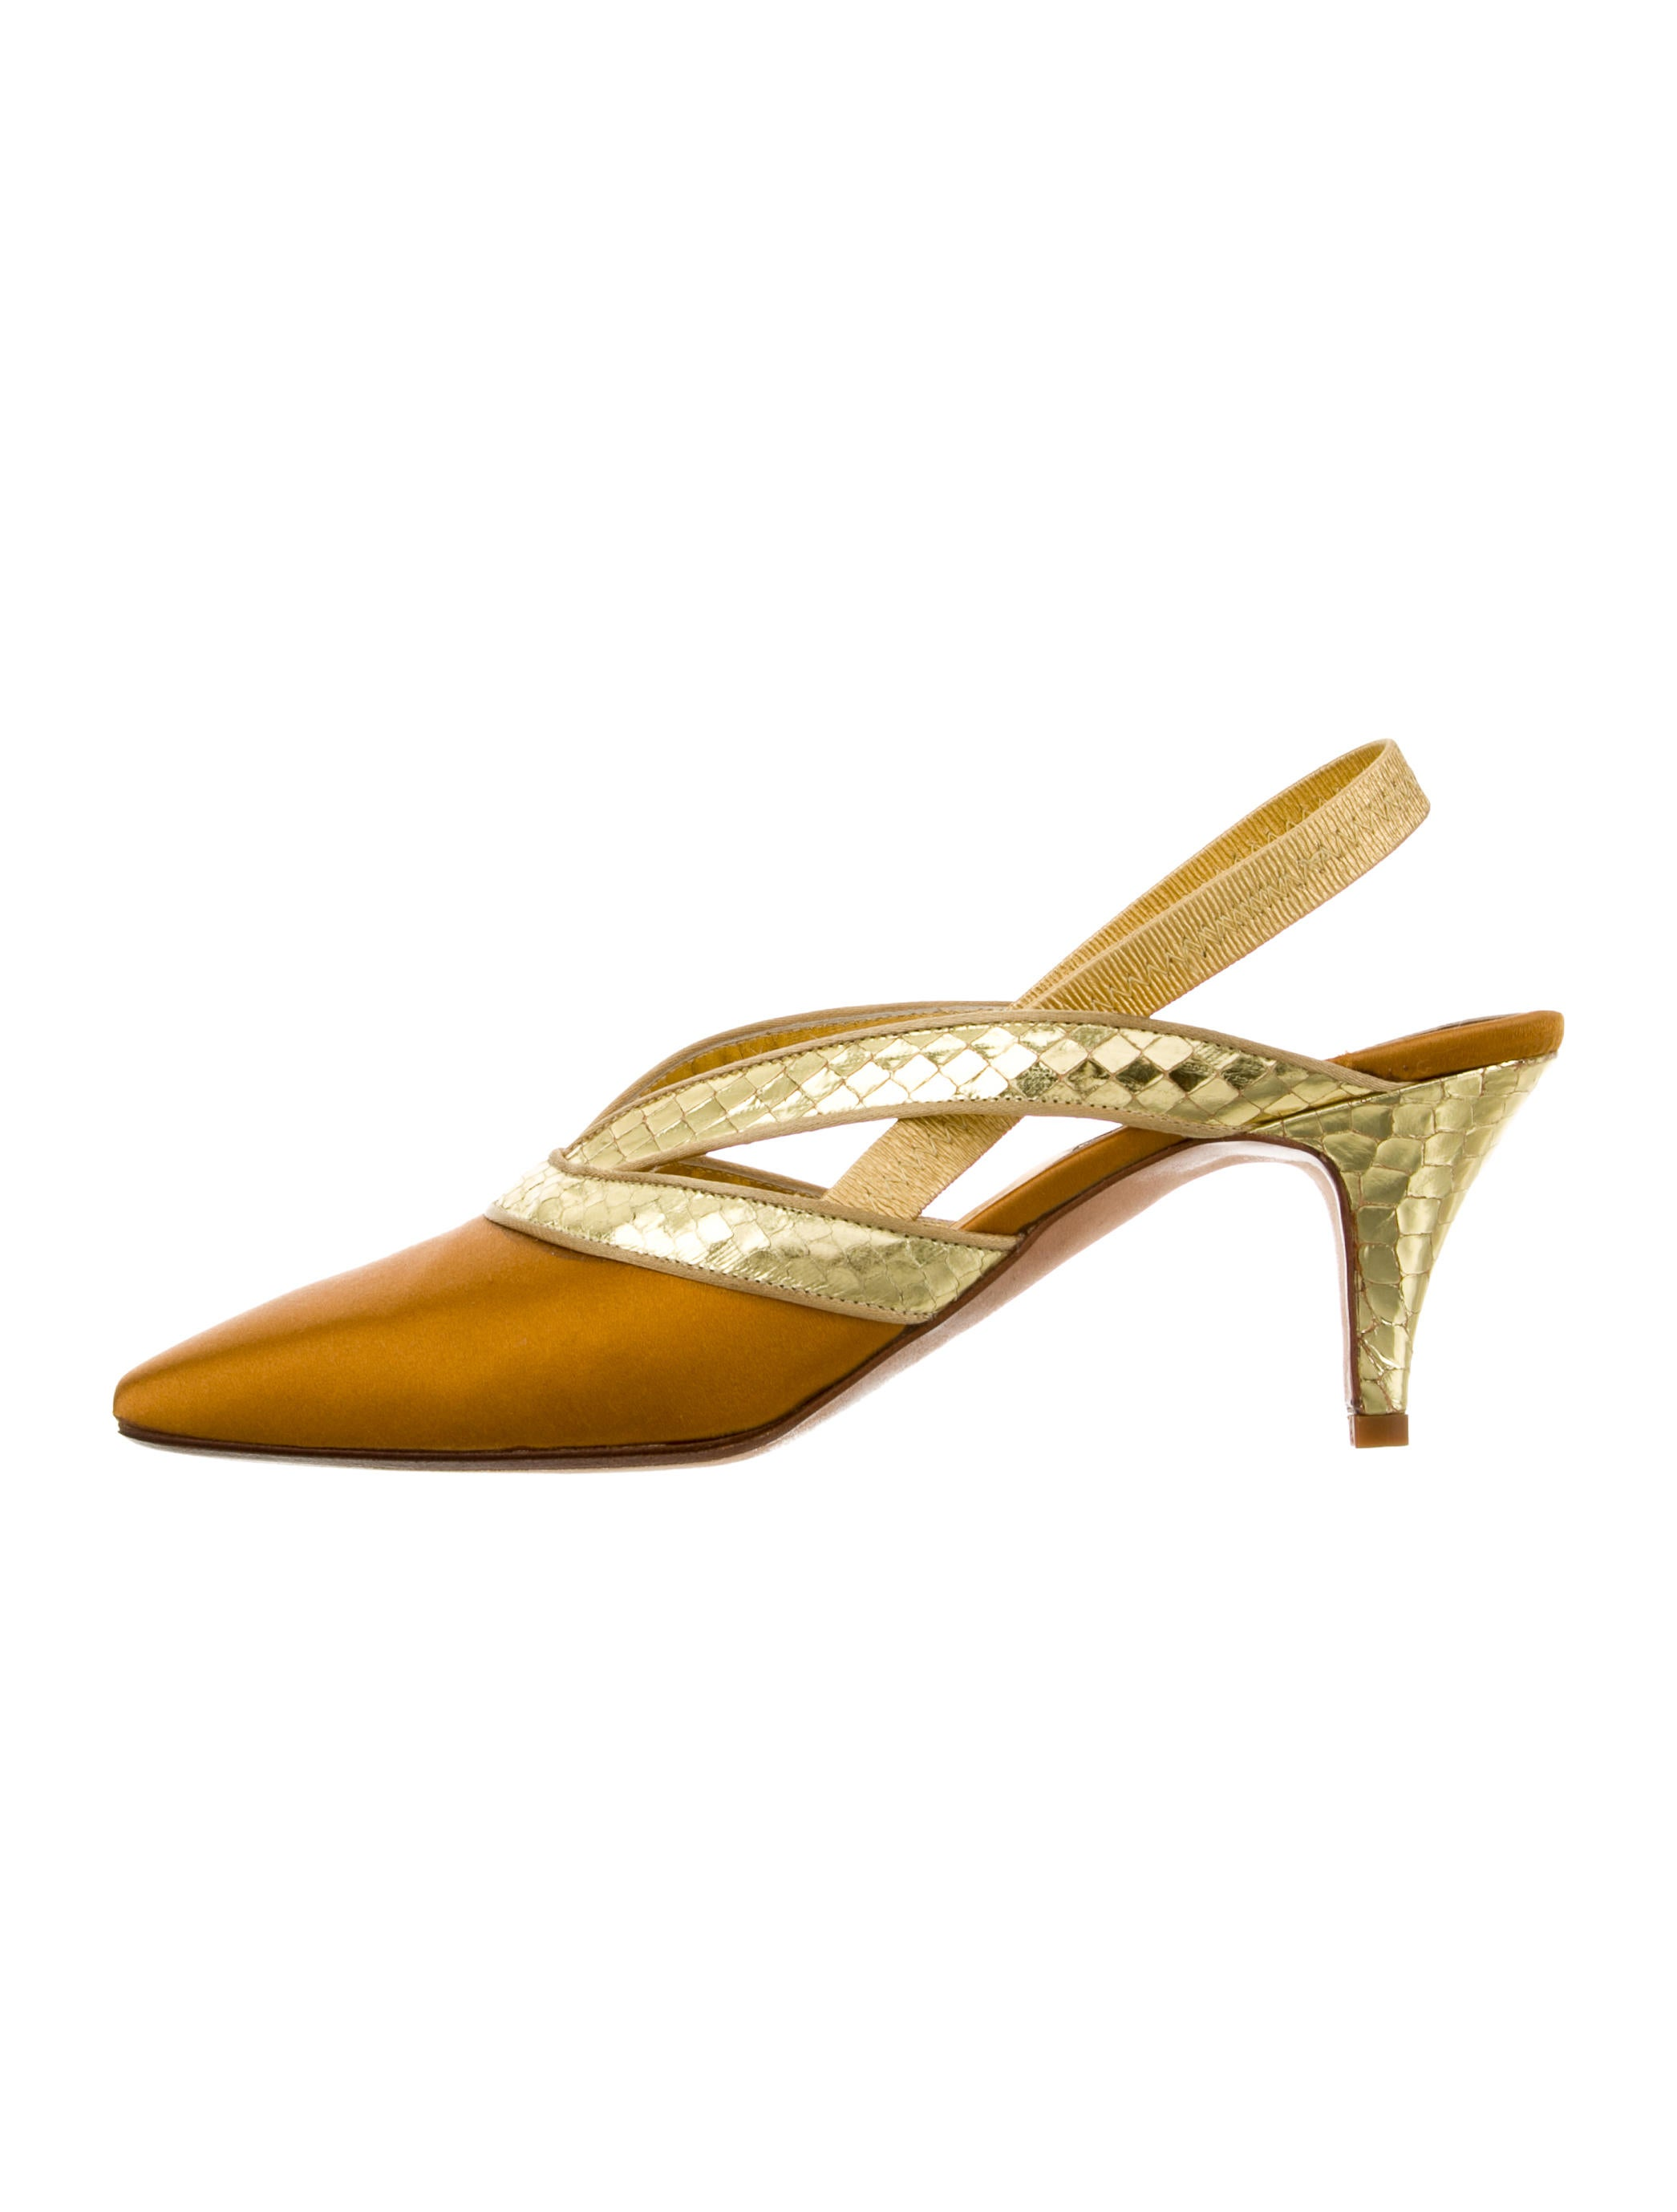 where to buy visit for sale Fendi Vintage Slingback Pumps cheap sast discount outlet locations free shipping eastbay tqzbJKpR8f